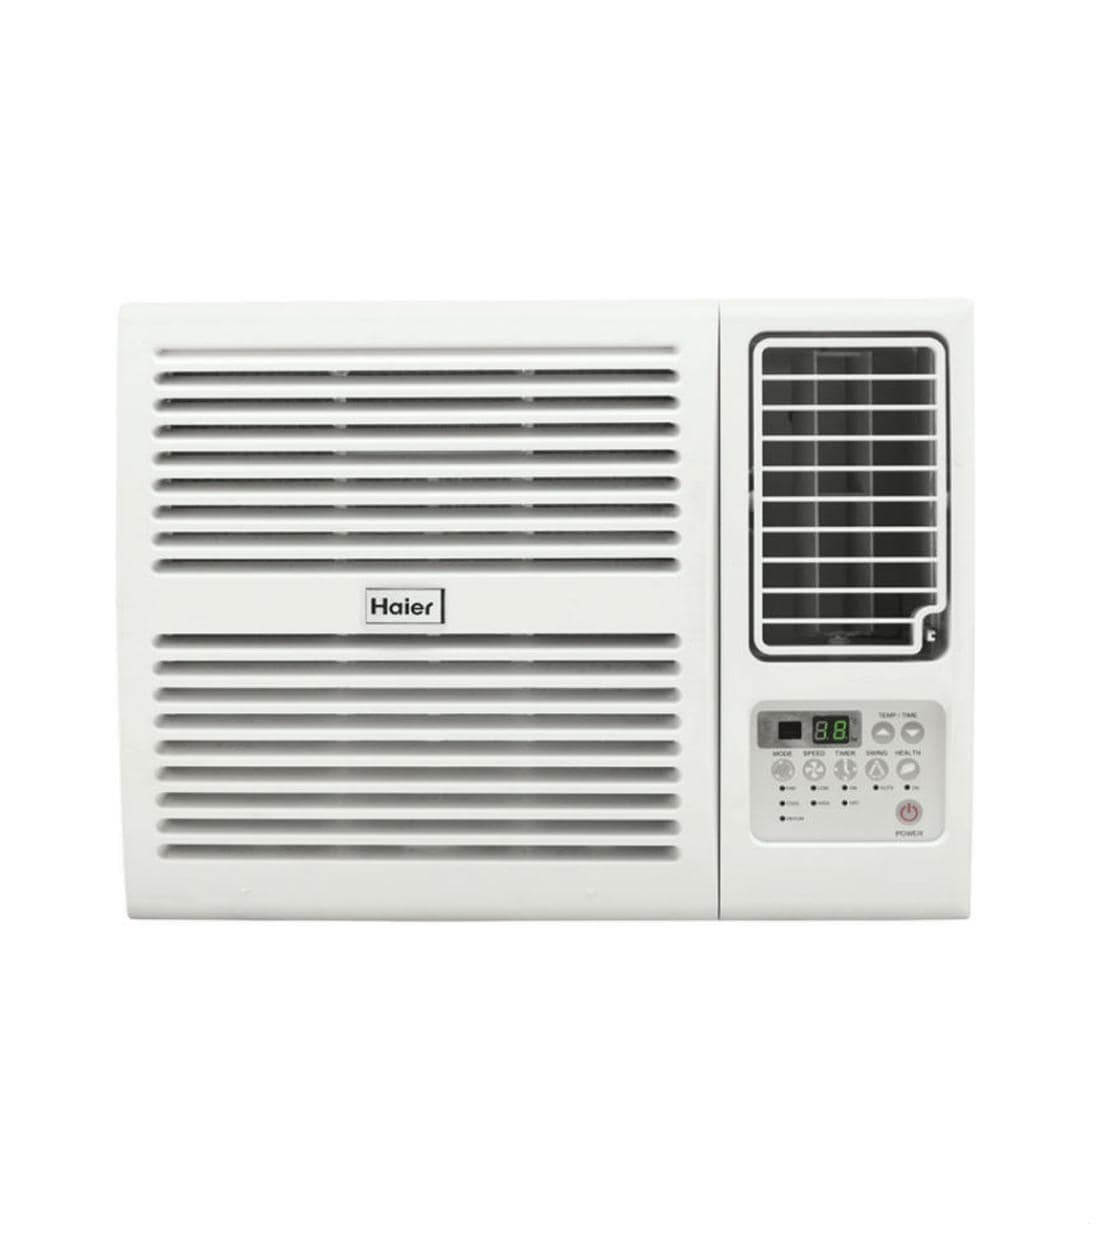 Haier 1 Ton 1 Star Window AC (HW-12CH1N, White)